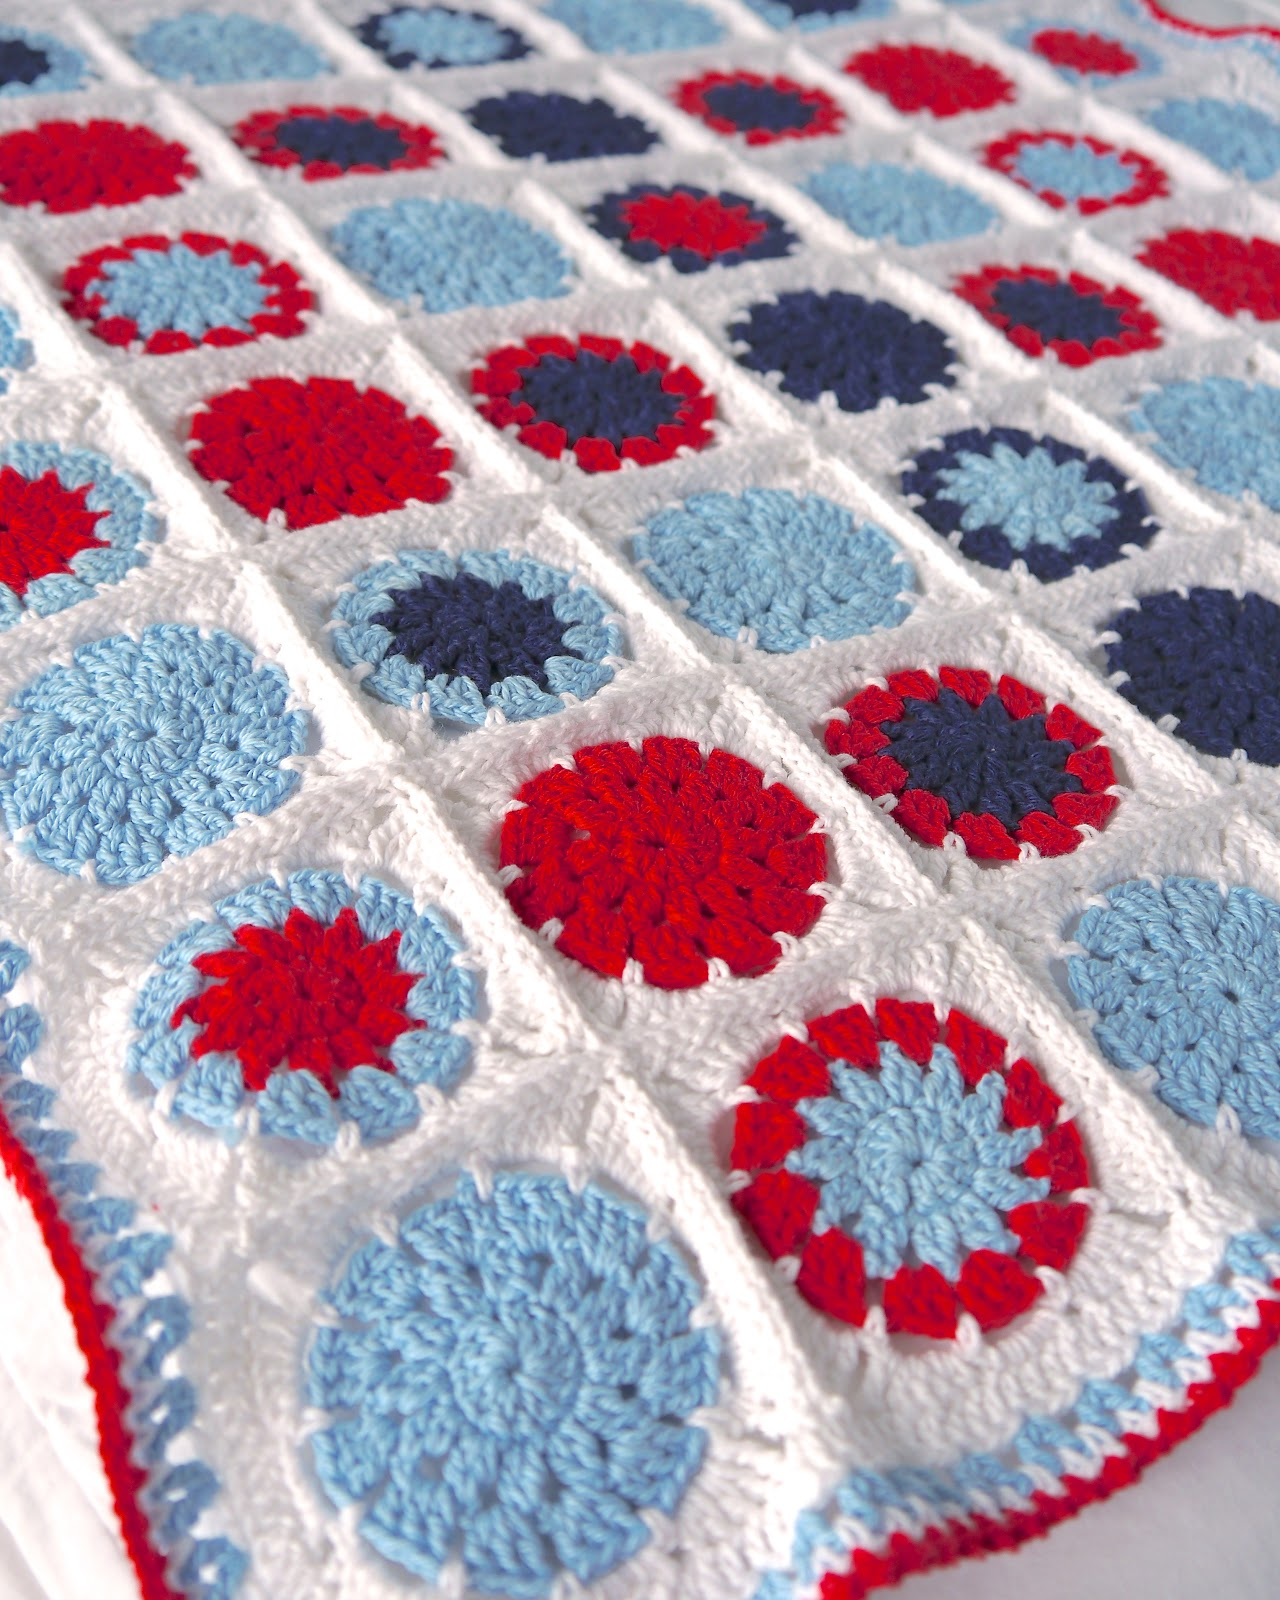 Crochet Baby Blanket Cotton Pattern : Sarita creative: Make it // Crochet Cotton Baby Blanket ...